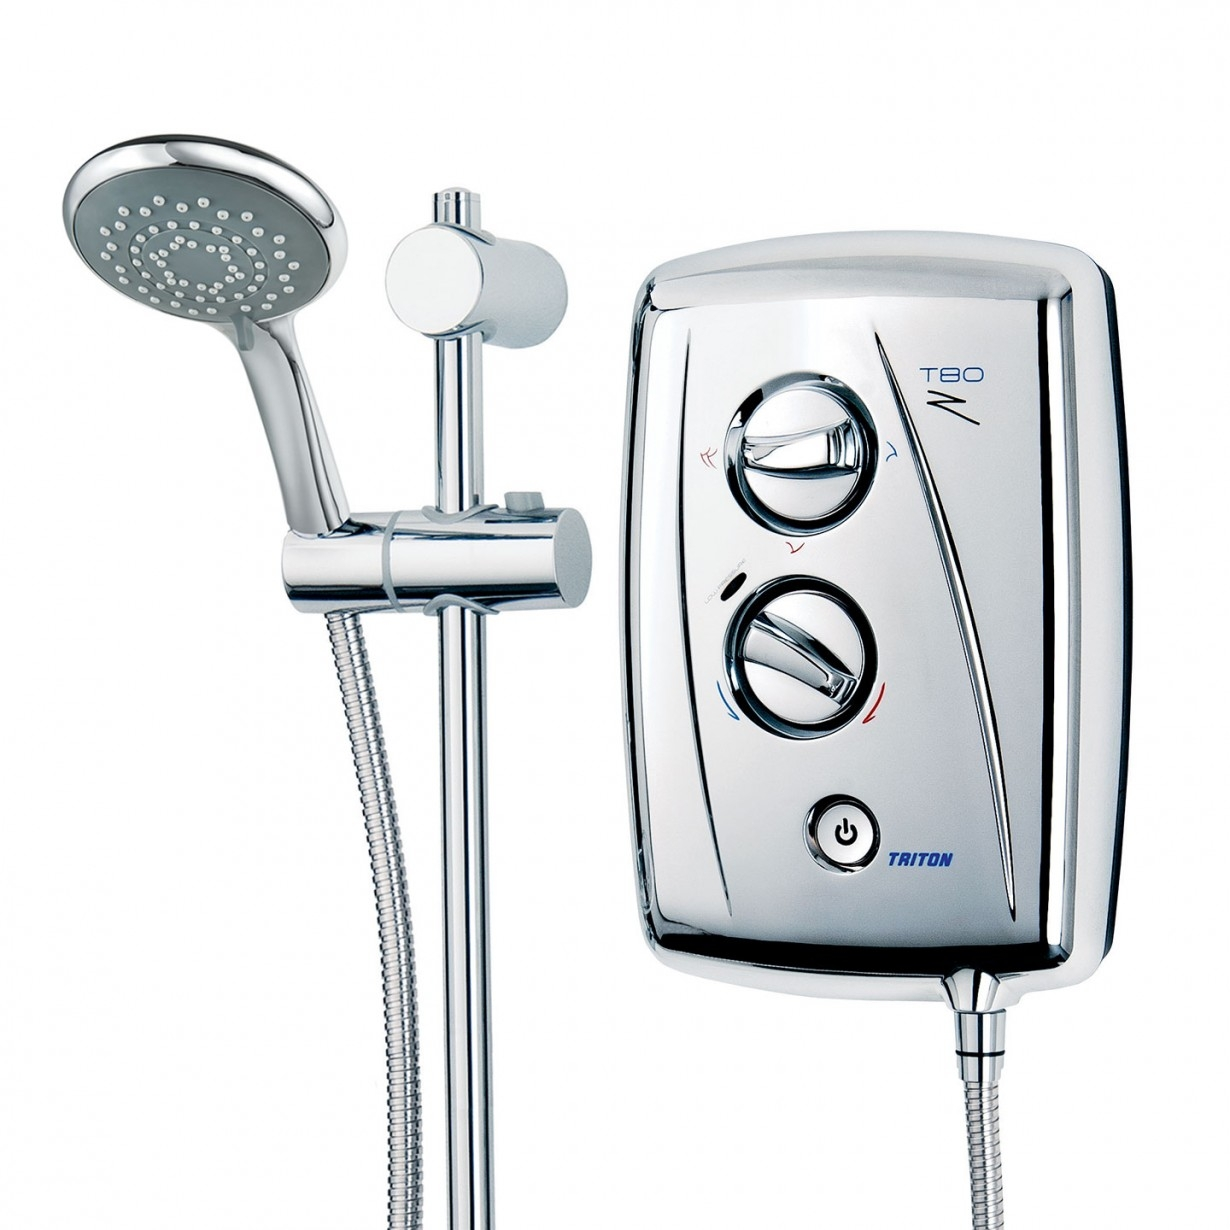 Triton T80Z Fast Fit Electric Shower 10.5KW - Chrome